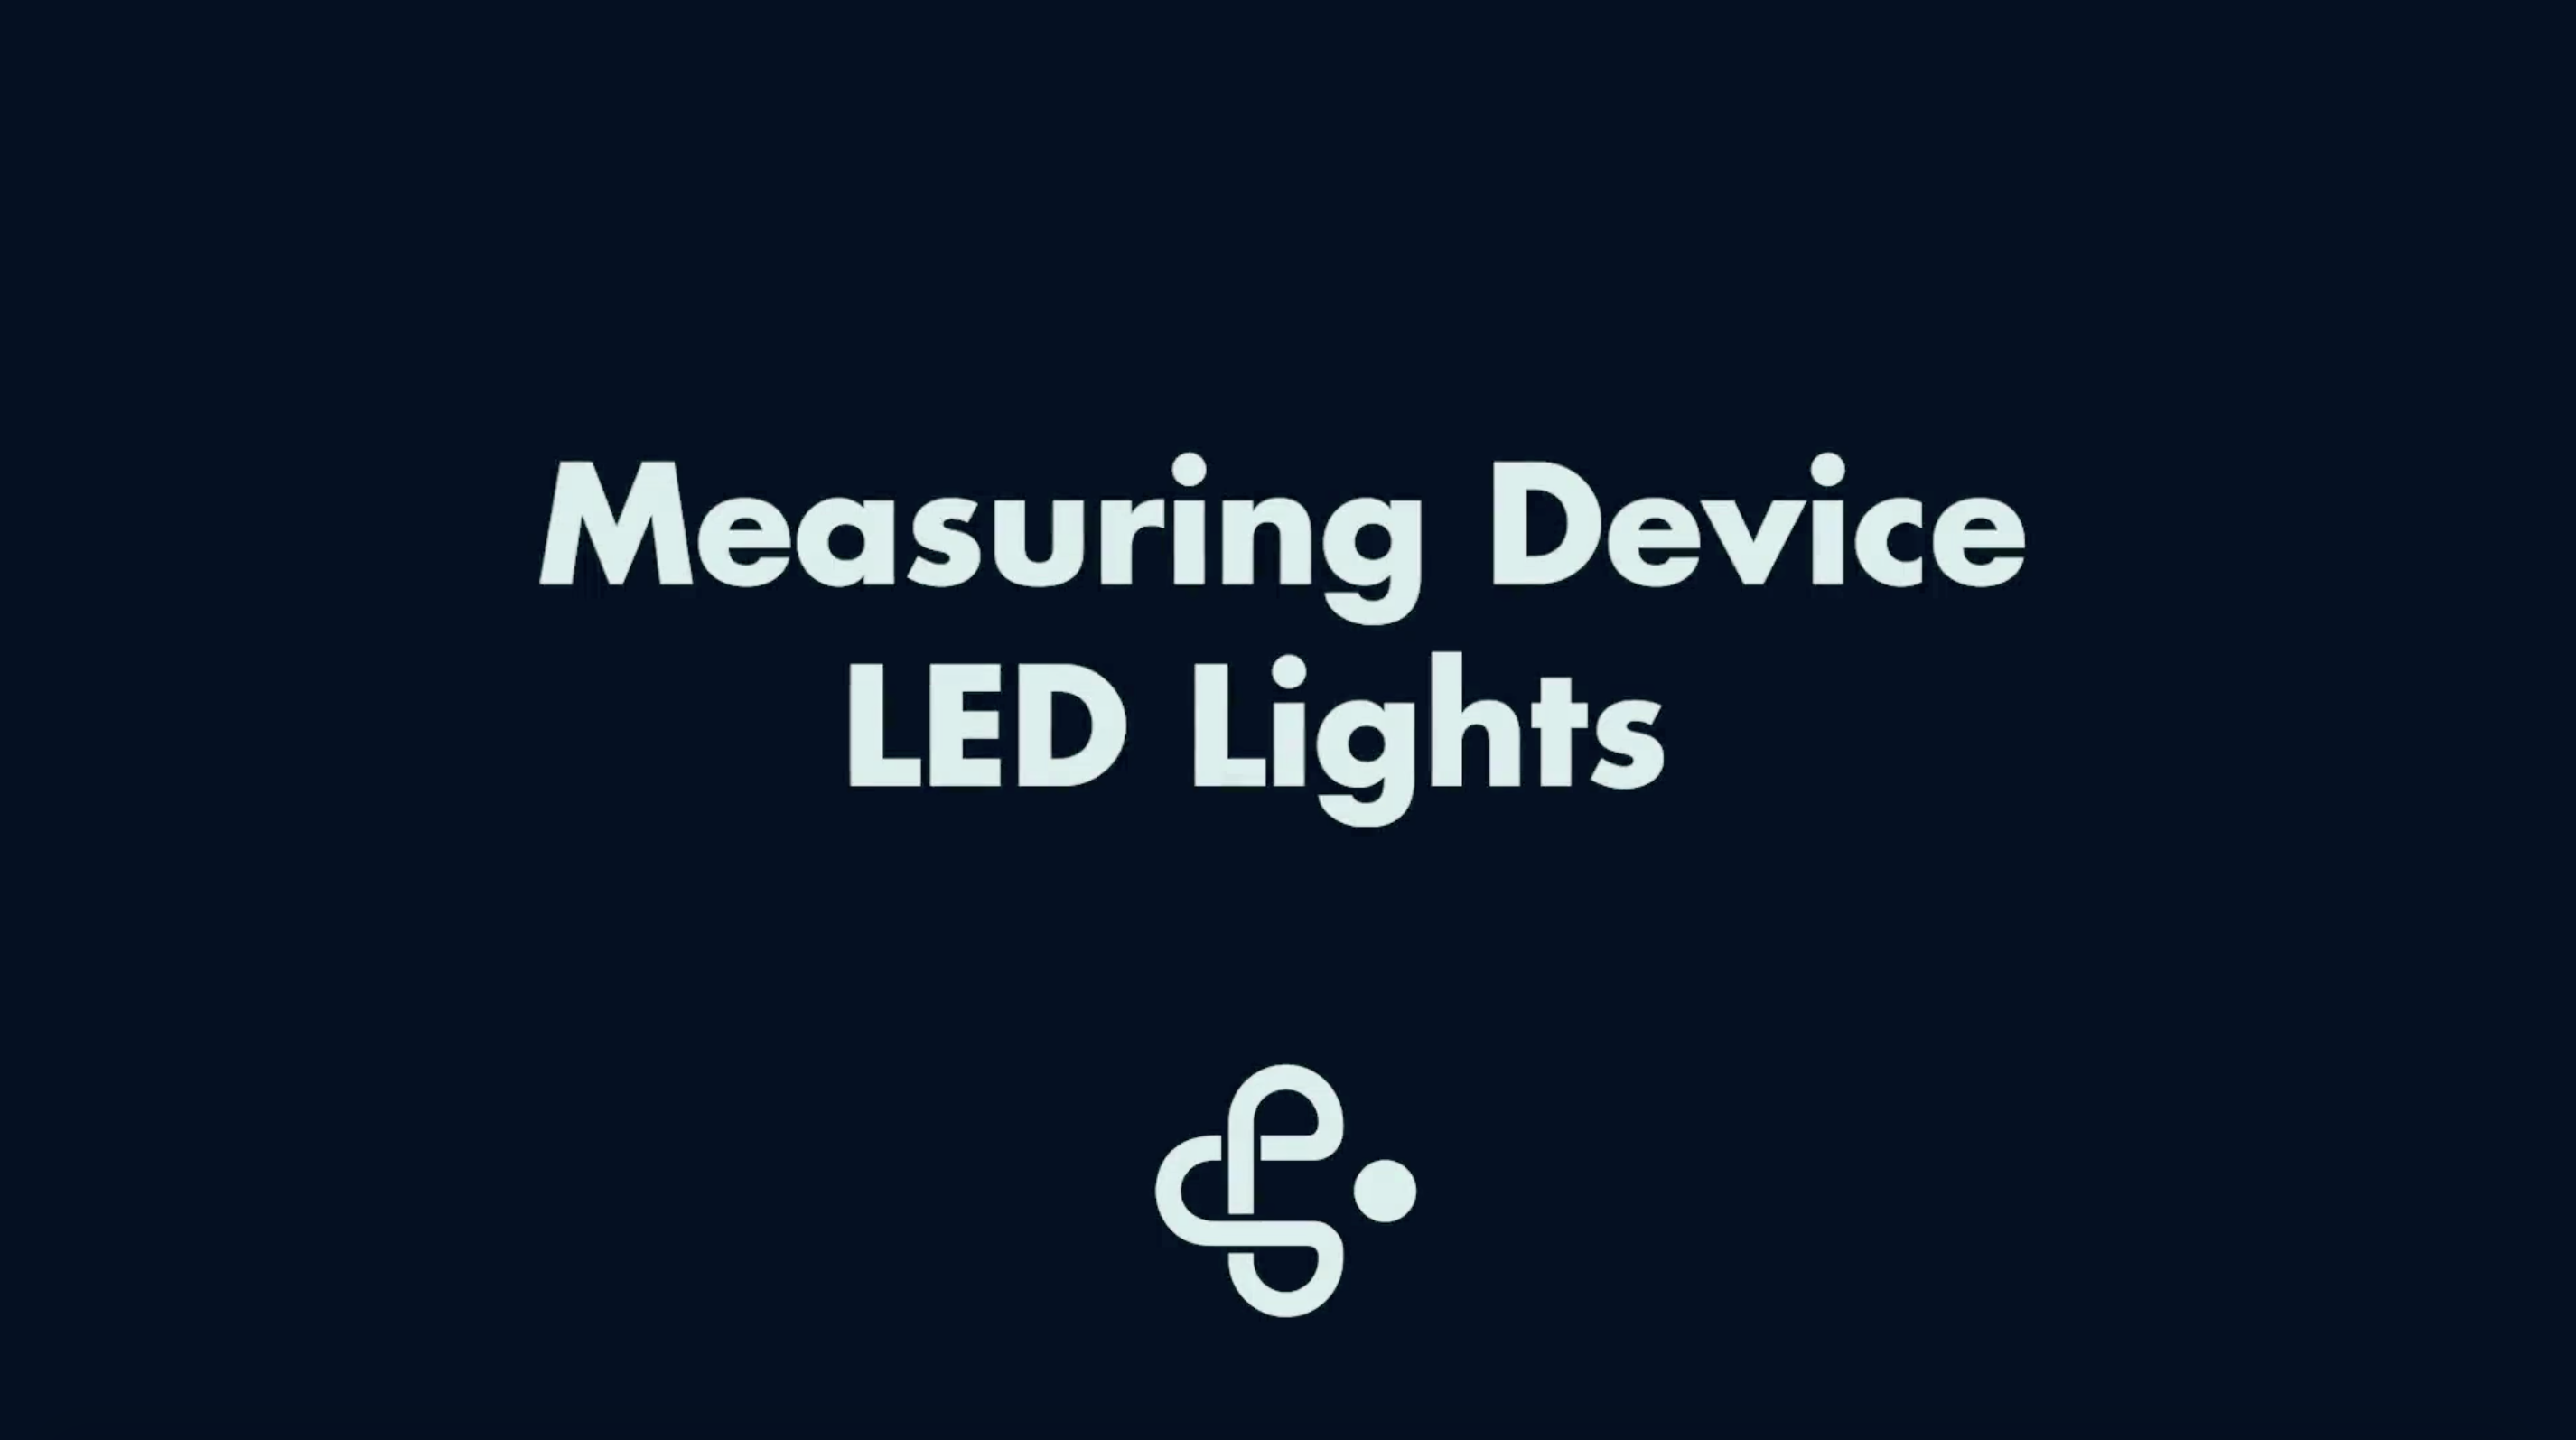 Measuring Device LED Lights